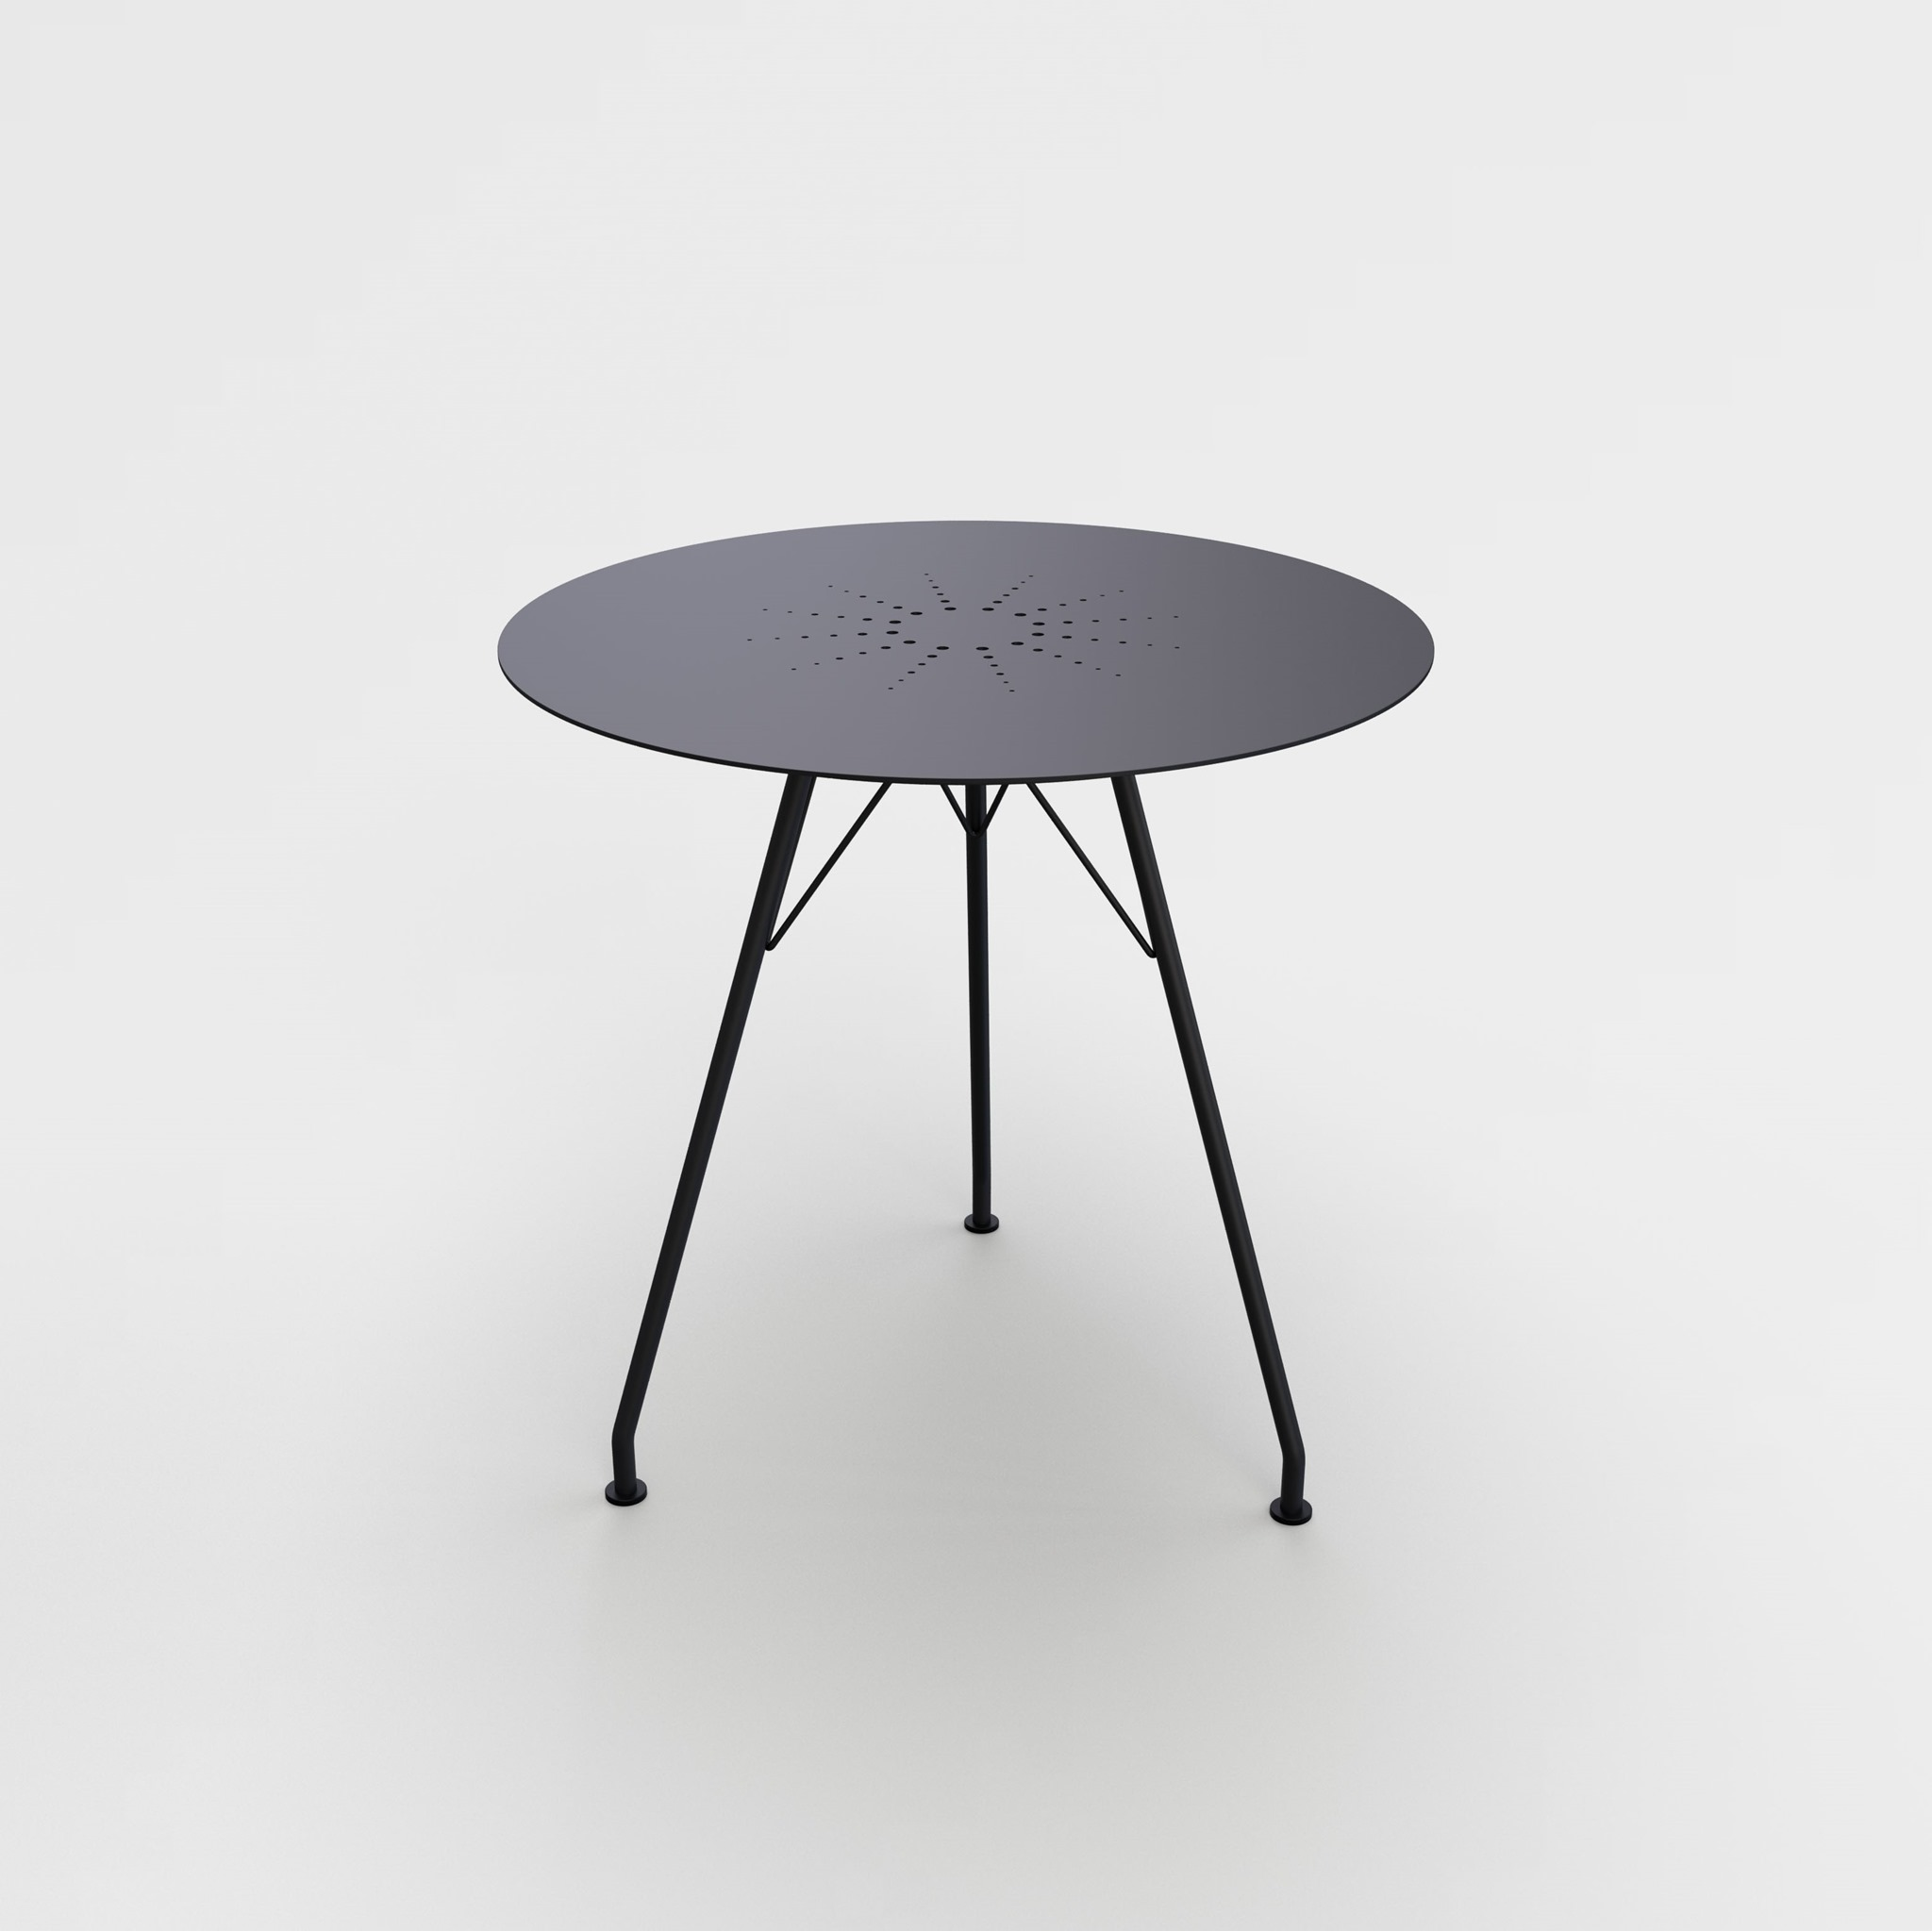 CAFE TABLE Ø74 cm // Black steel